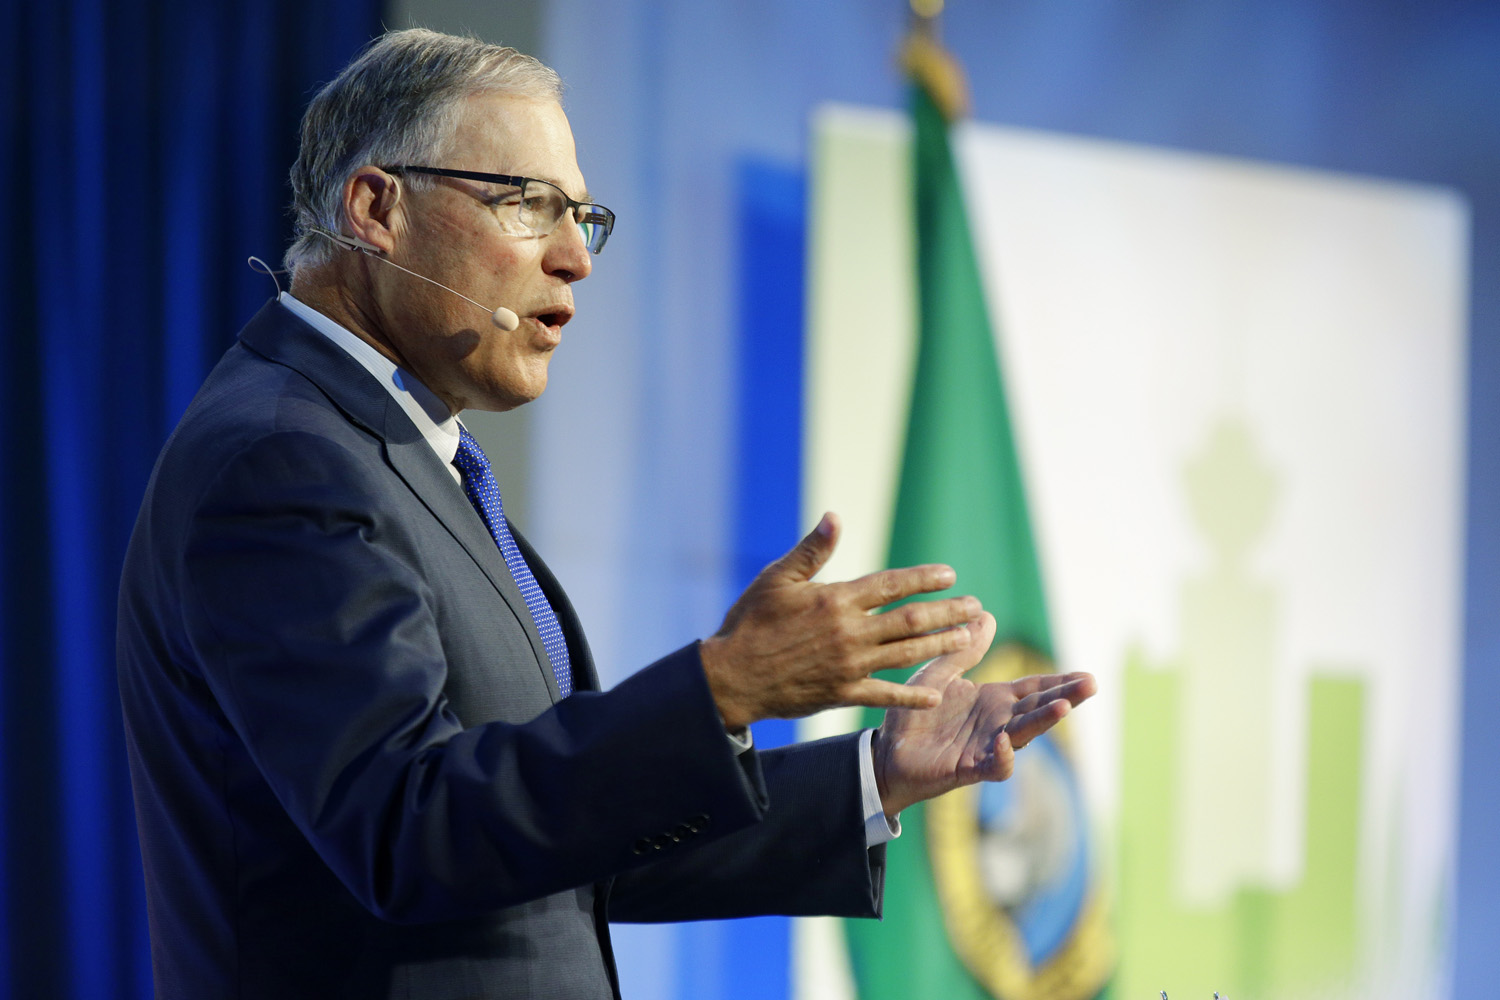 Washington Gov. Jay Inslee speaks Wednesday, Sept. 13, 2017, at the Cascadia Innovation Conference in Seattle. (Ted S. Warren/AP)